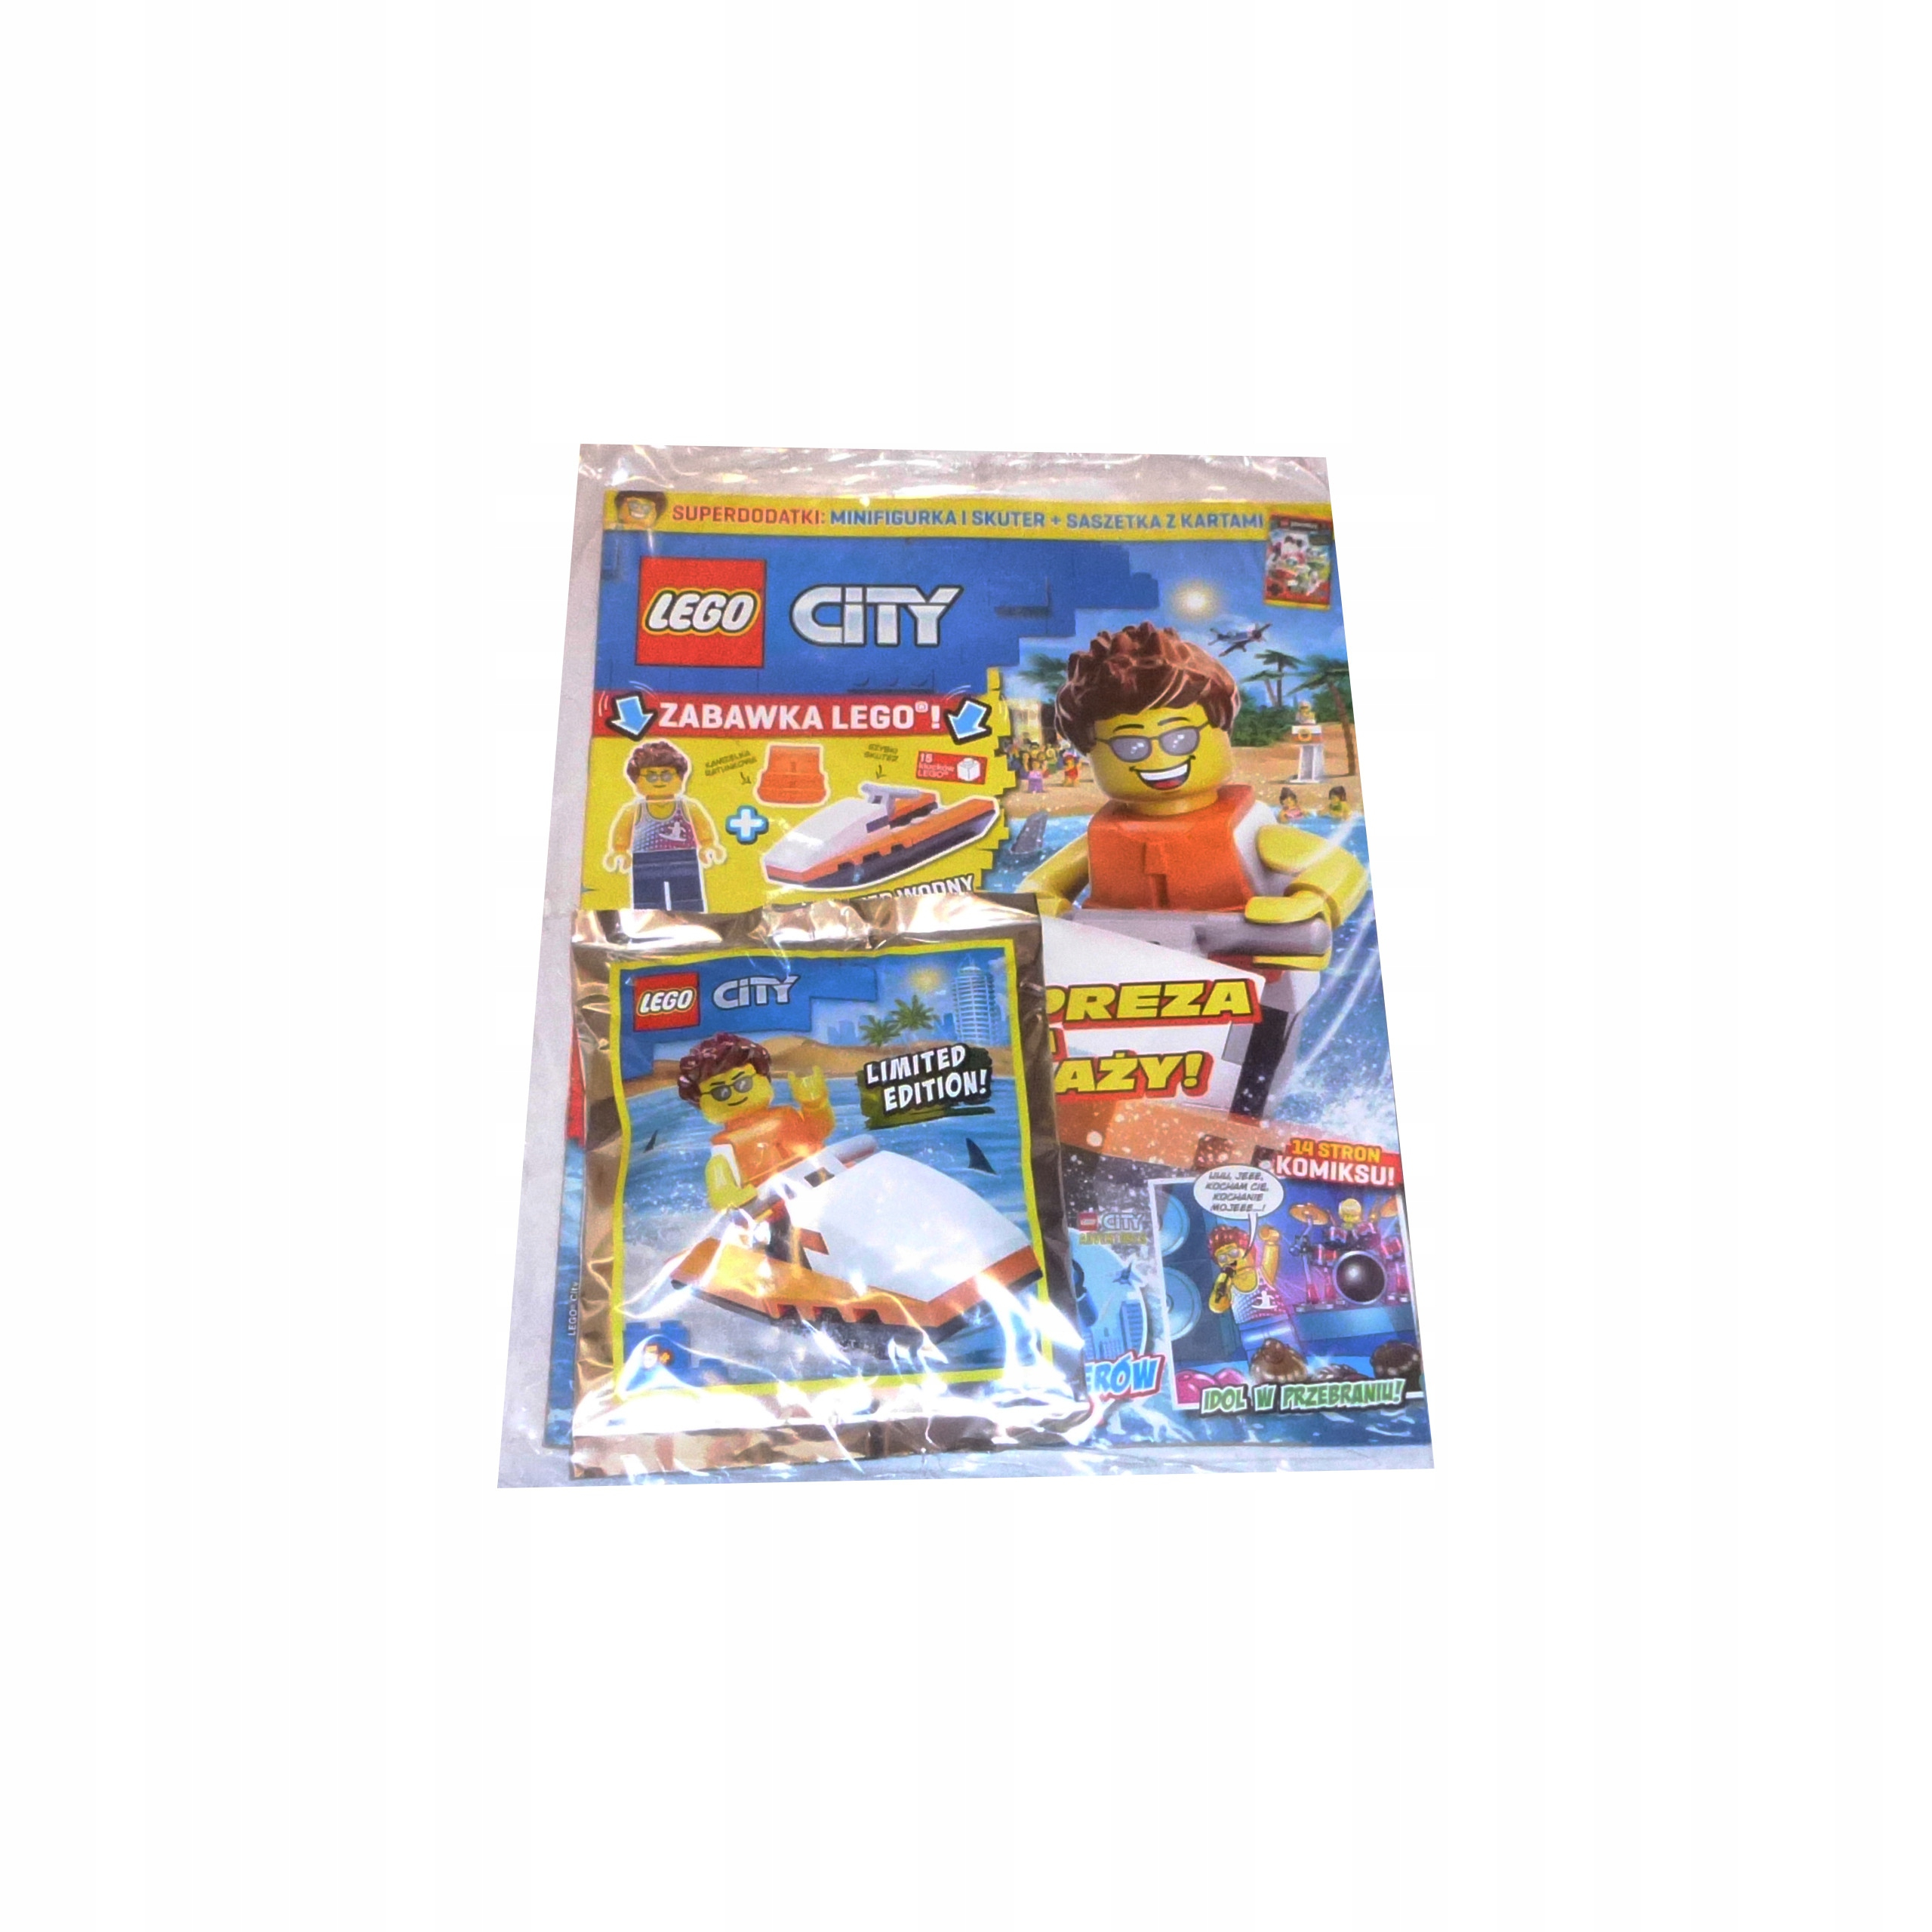 gazetka magazyn LEGO City 8 2020